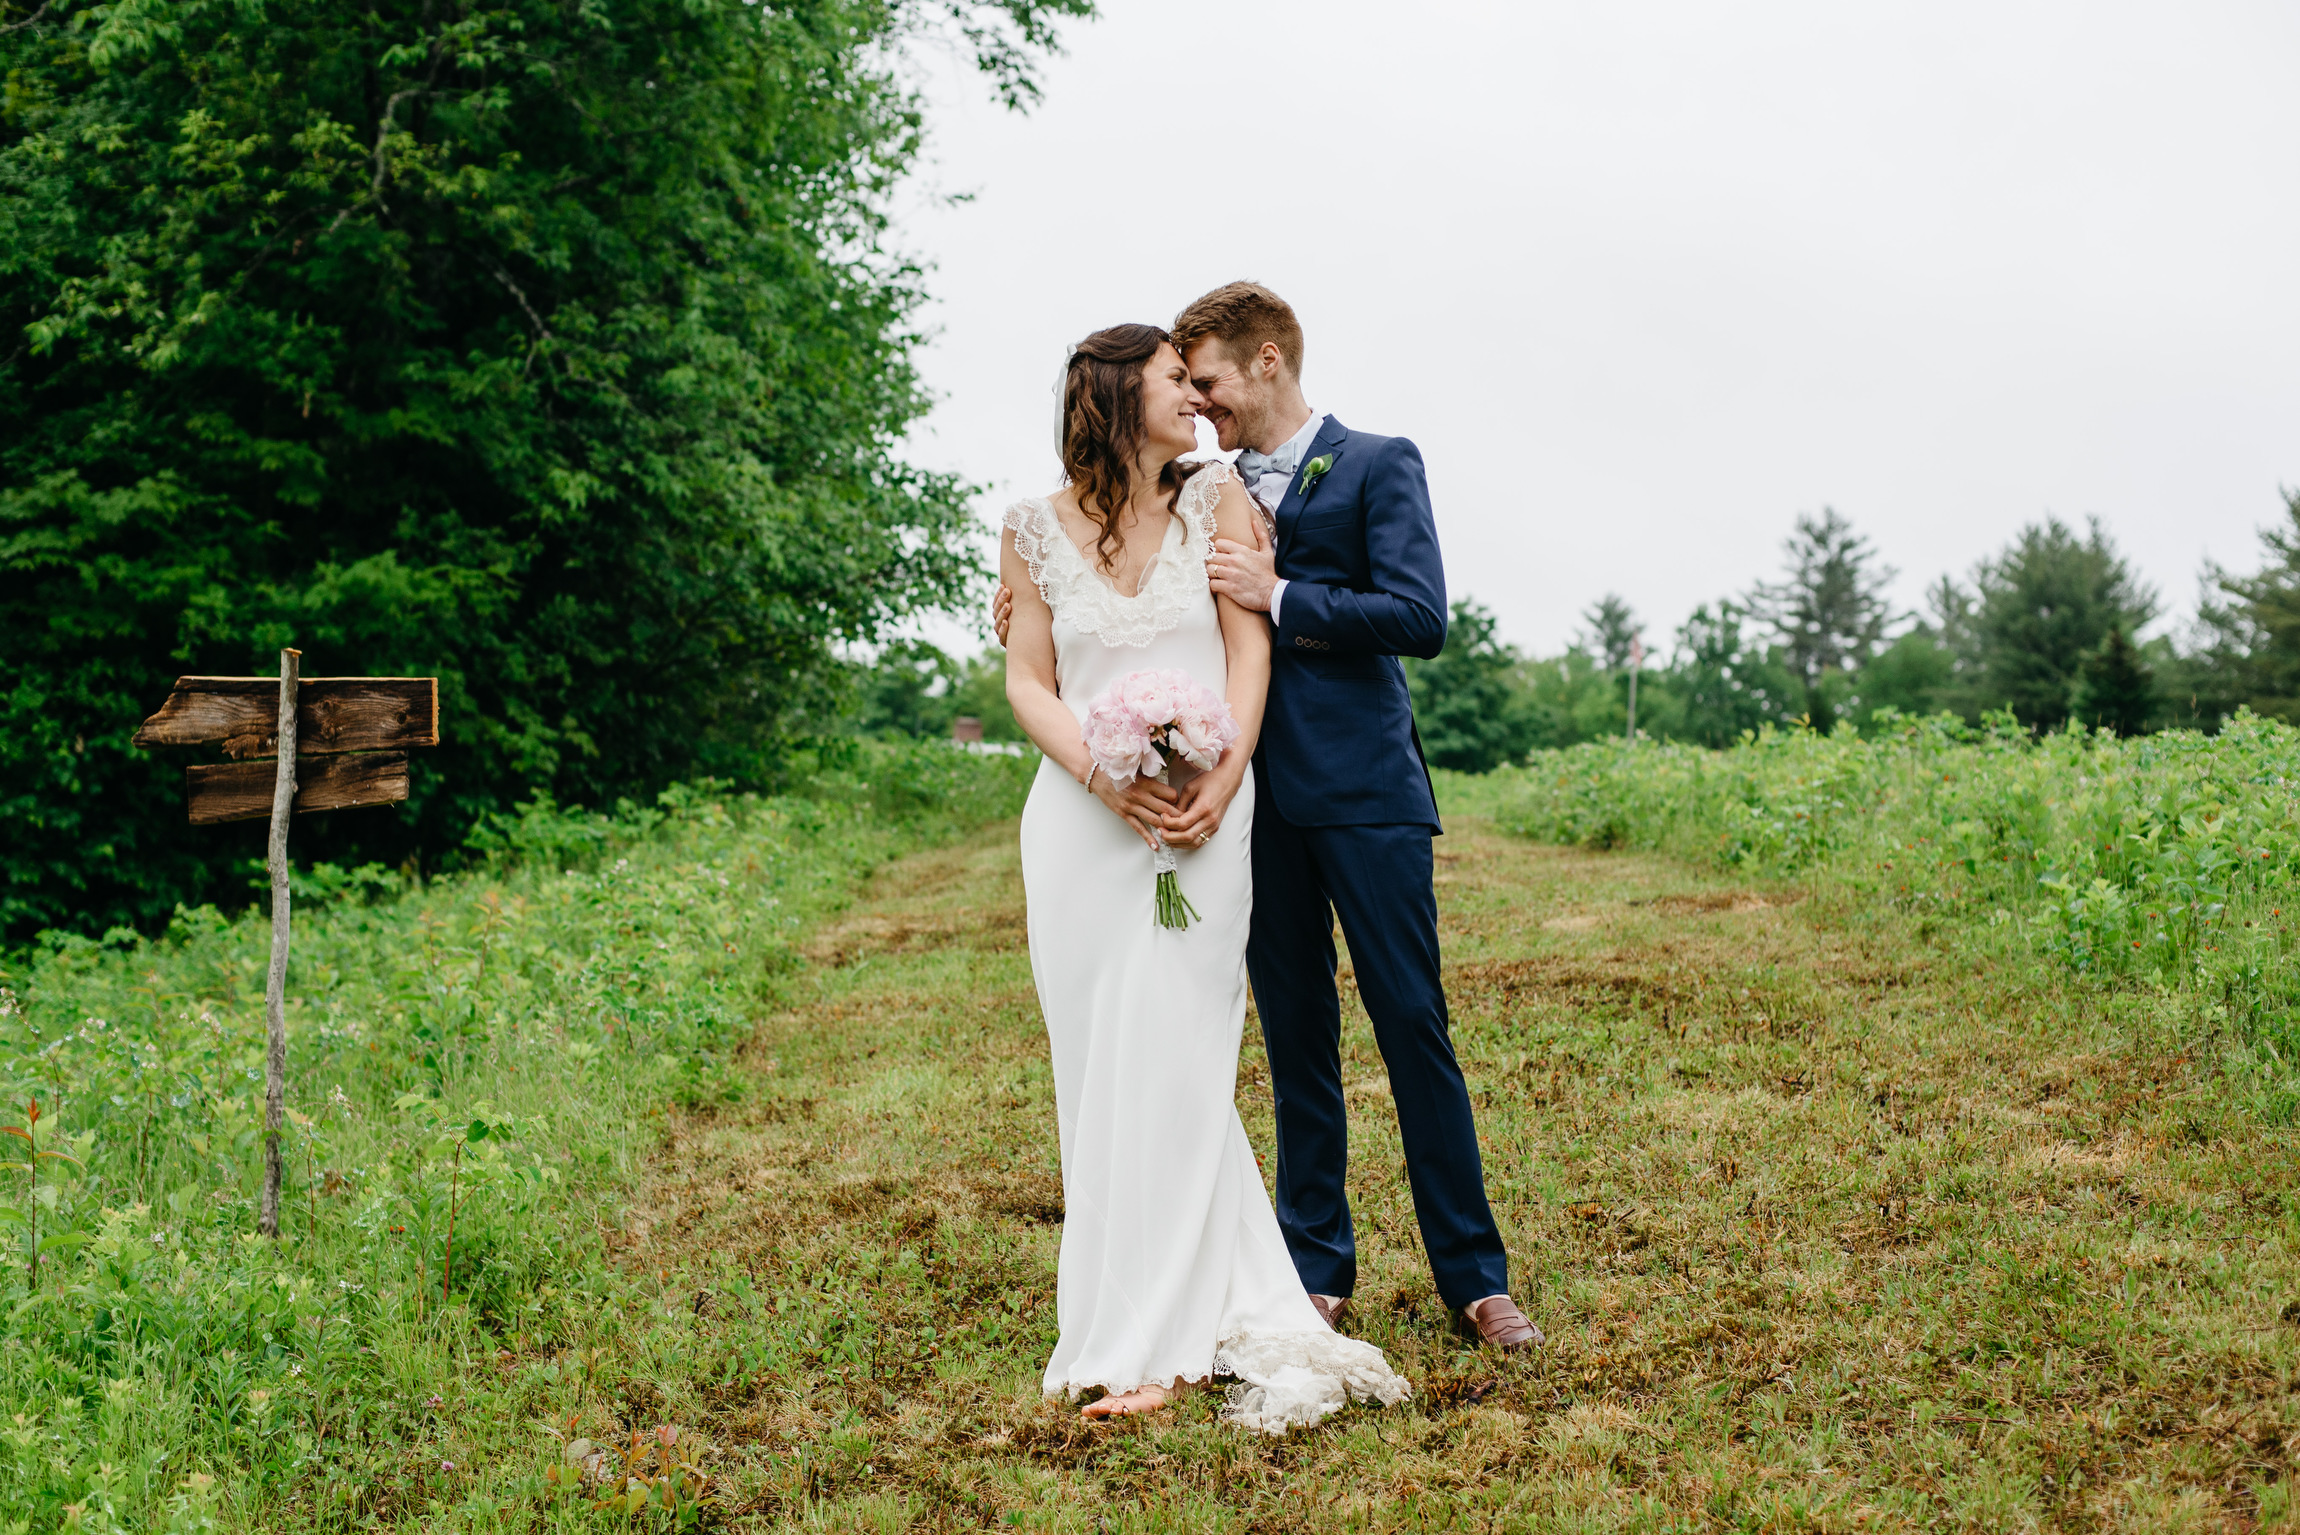 warby parker wedding bride from brooklyn in vermont